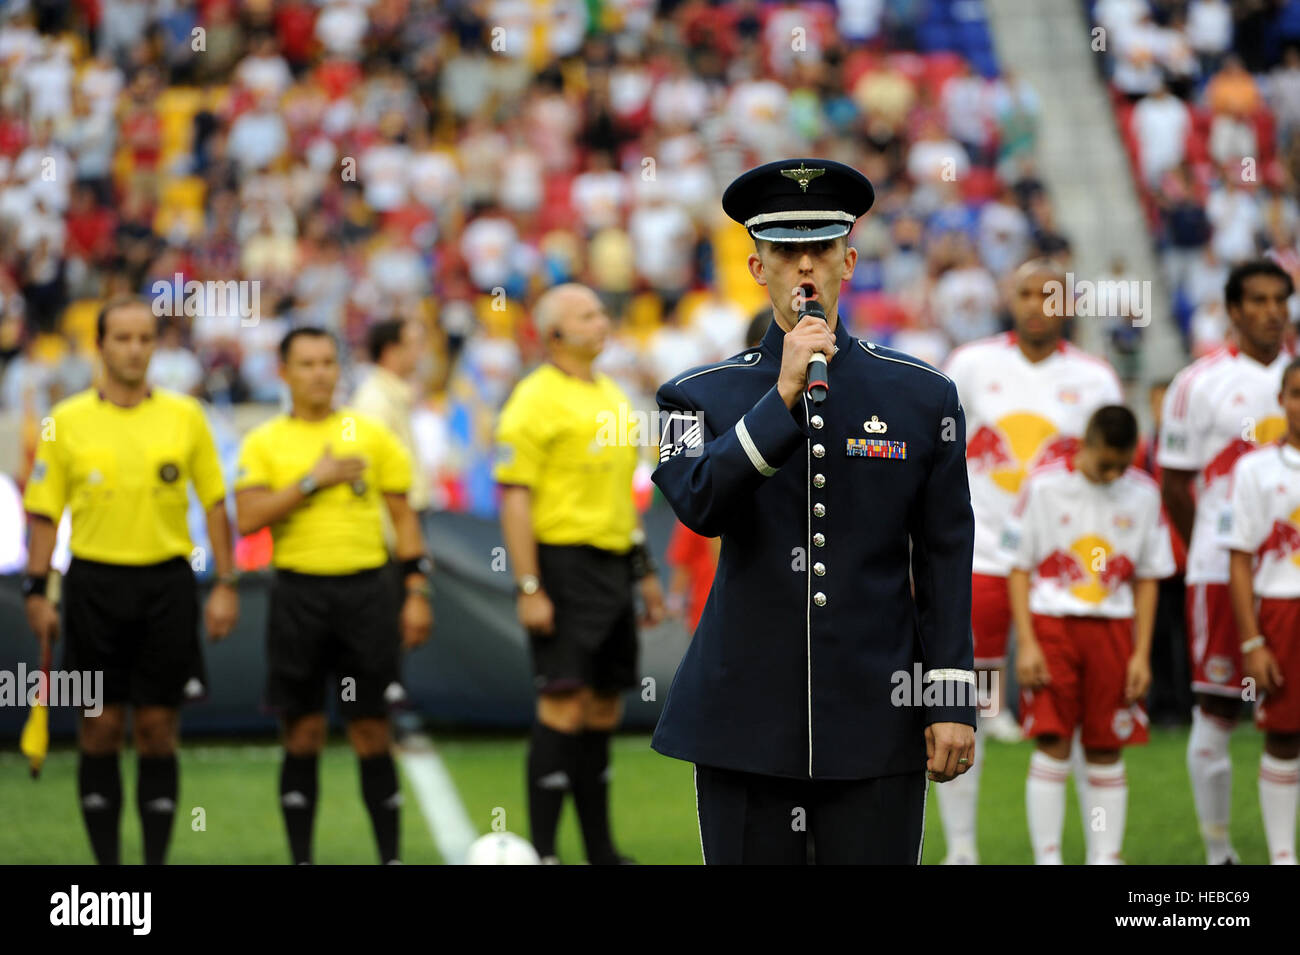 A U.S. Air Force member sings the National Anthem before a Major League Soccer match as part of Air Force Week 2012 - Stock Image